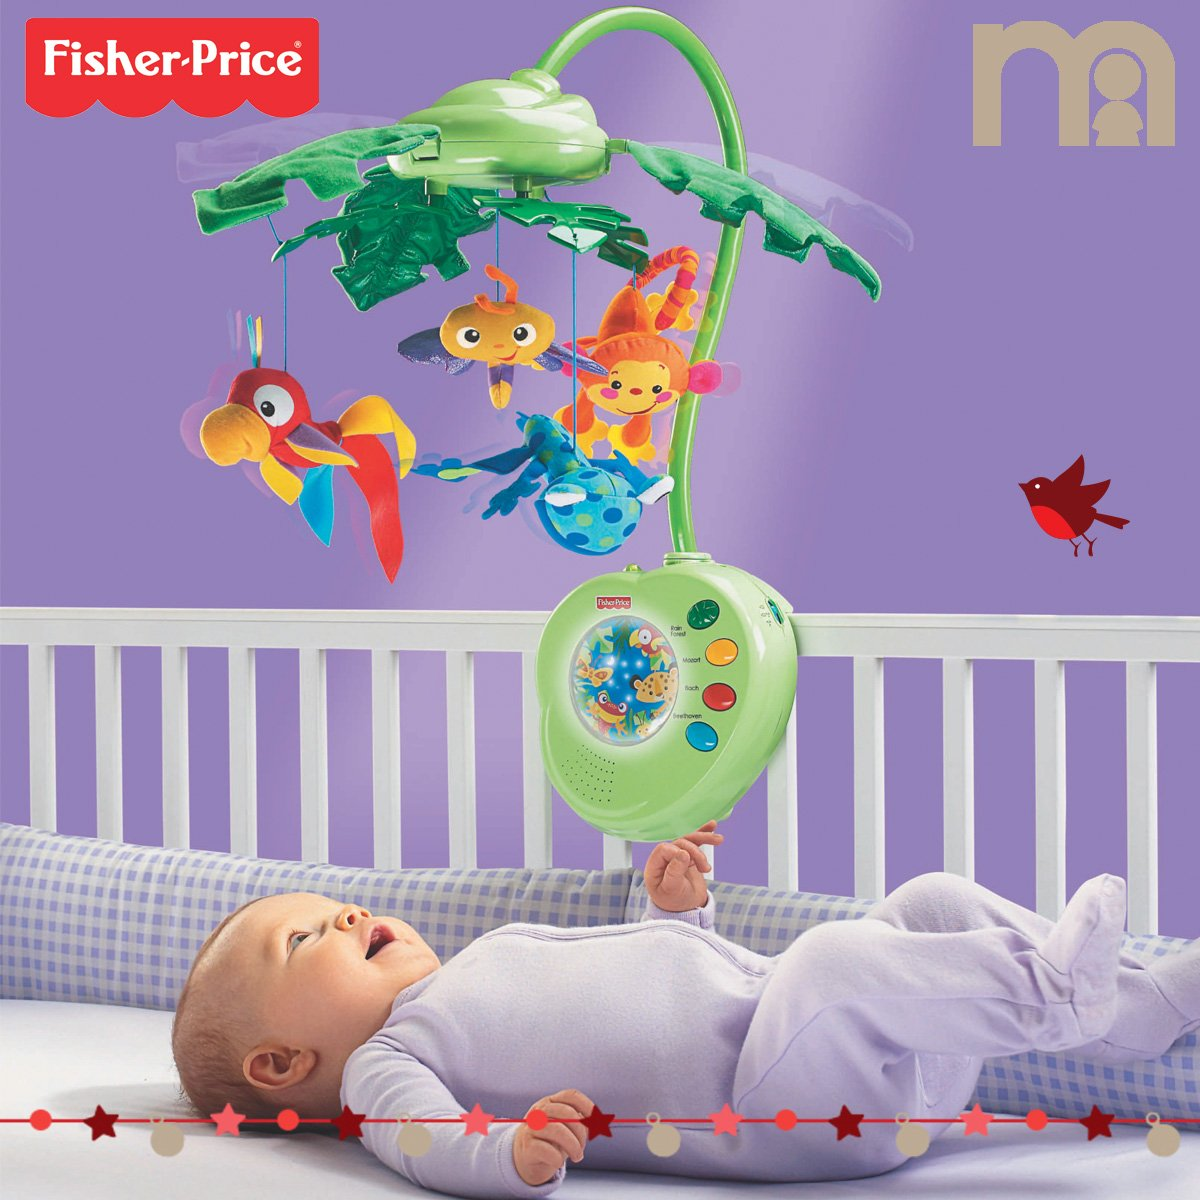 #WIN the Fisher-Price Rainforest Peek-A-Boo Leaves Musical Mobile ! Just tell us your baby's favourite lullaby. https://t.co/56YQn5v5vY